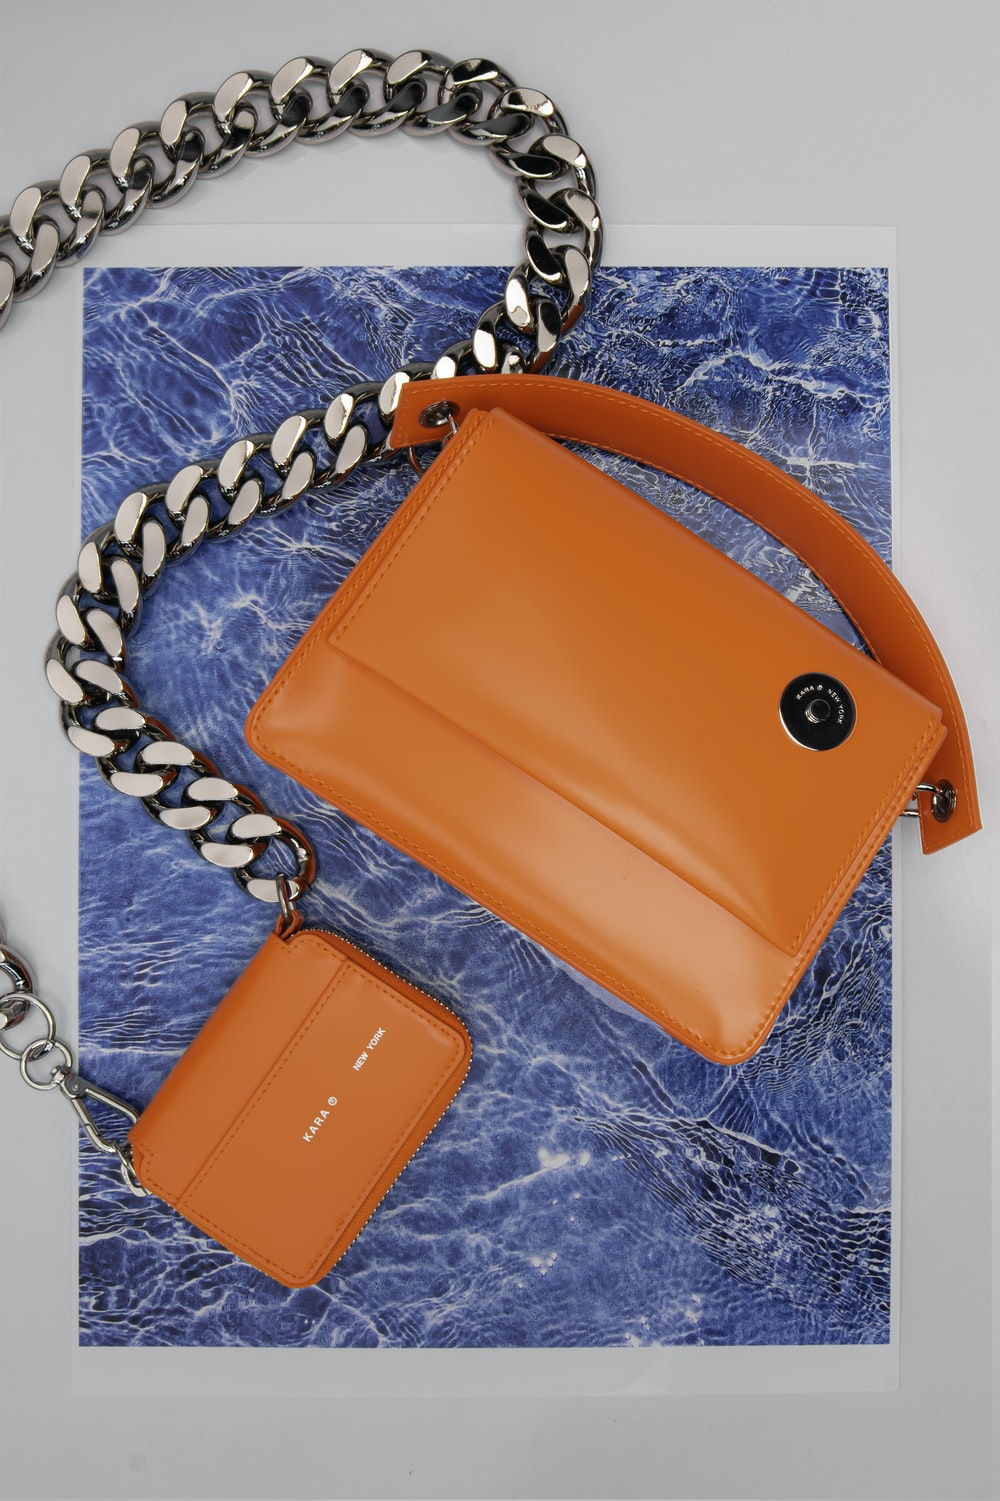 brown leather sling bag on blue and white textile